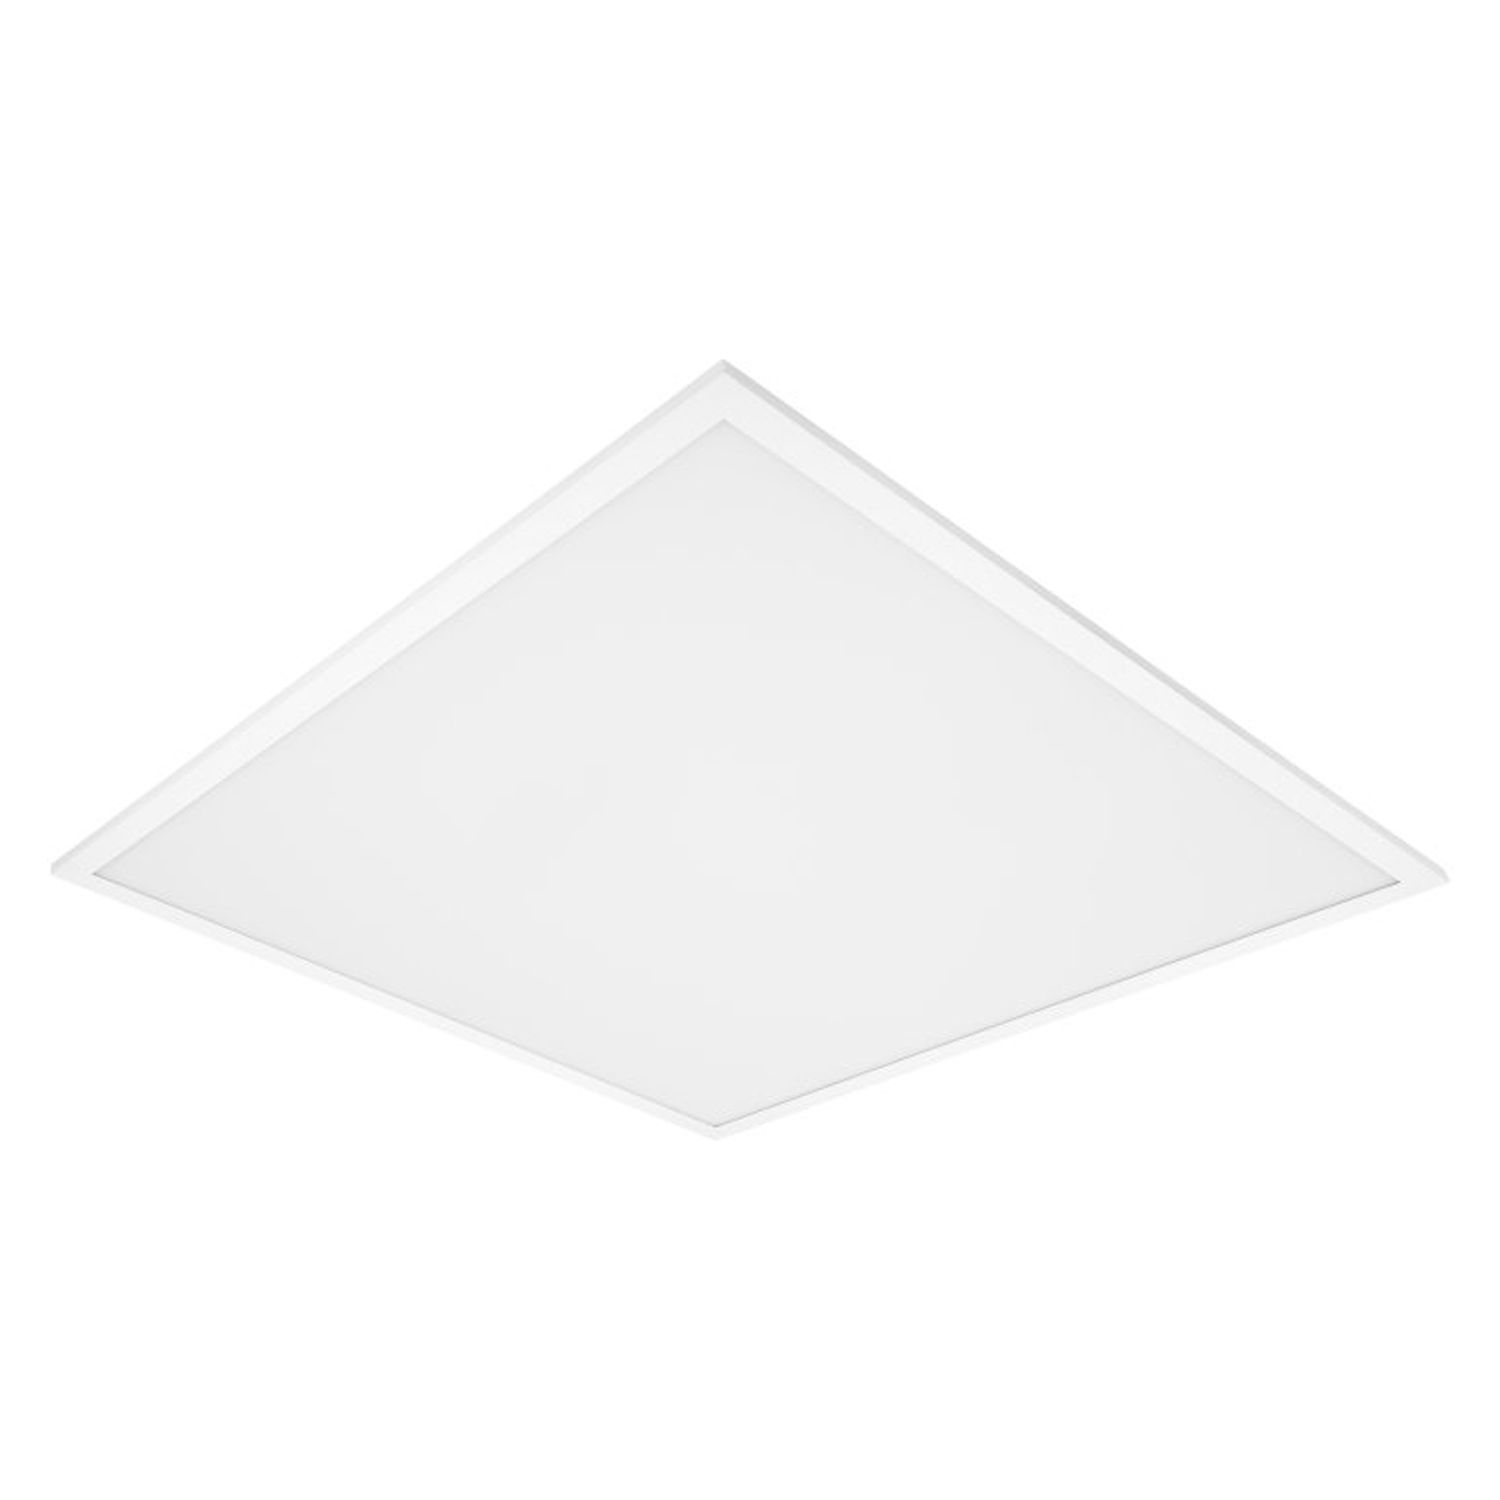 Ledvance LED Panel Performance 60x60cm 4000K 36W UGR <19